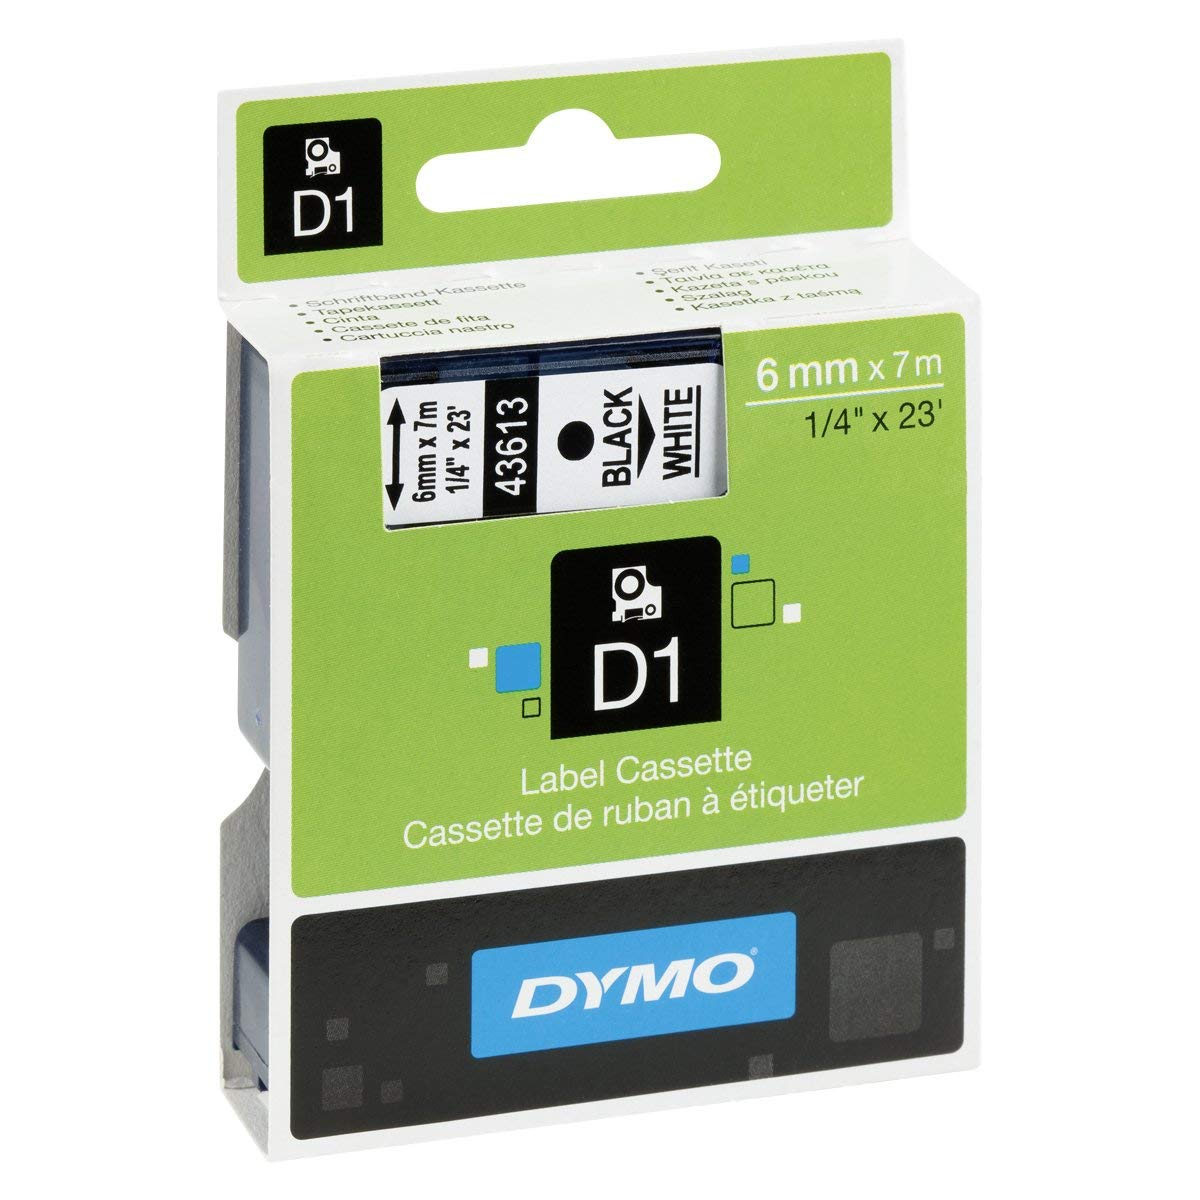 Dymo S0720780 D1 Label Tape 6mm x 7m - Black on White (pc)